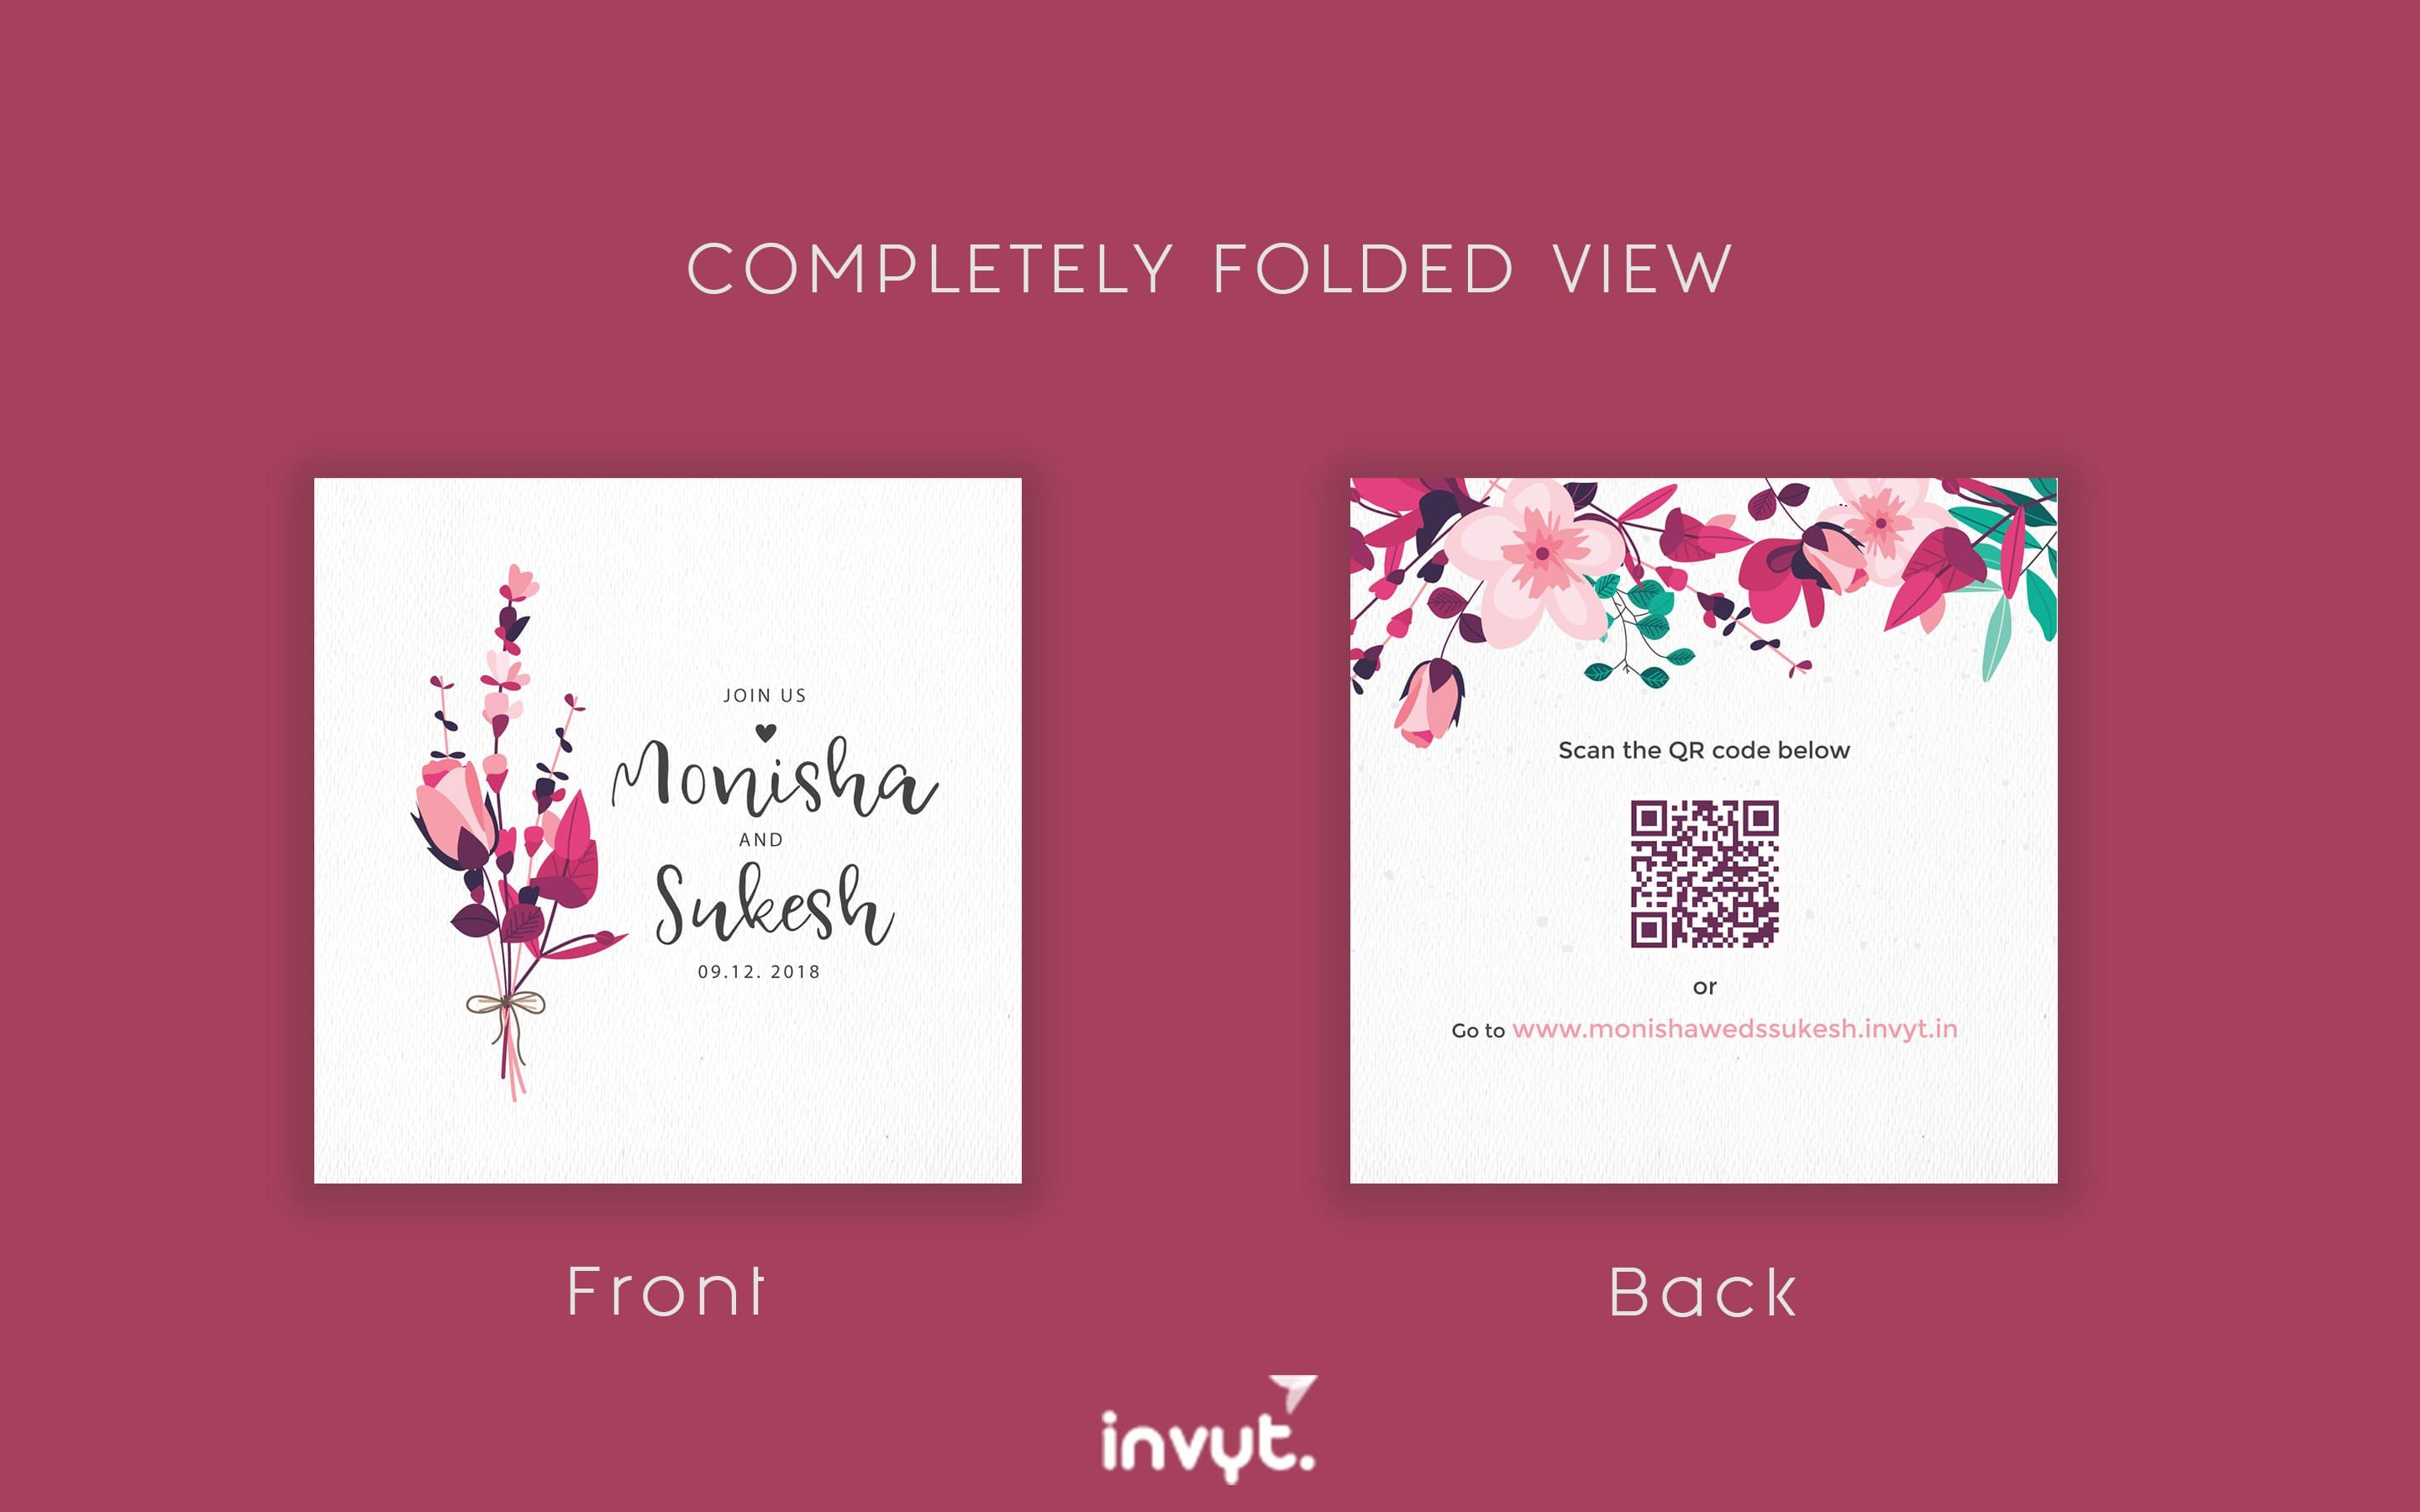 Invyt Custom Card Invitation Card Design Invitation Cards How To Memorize Things